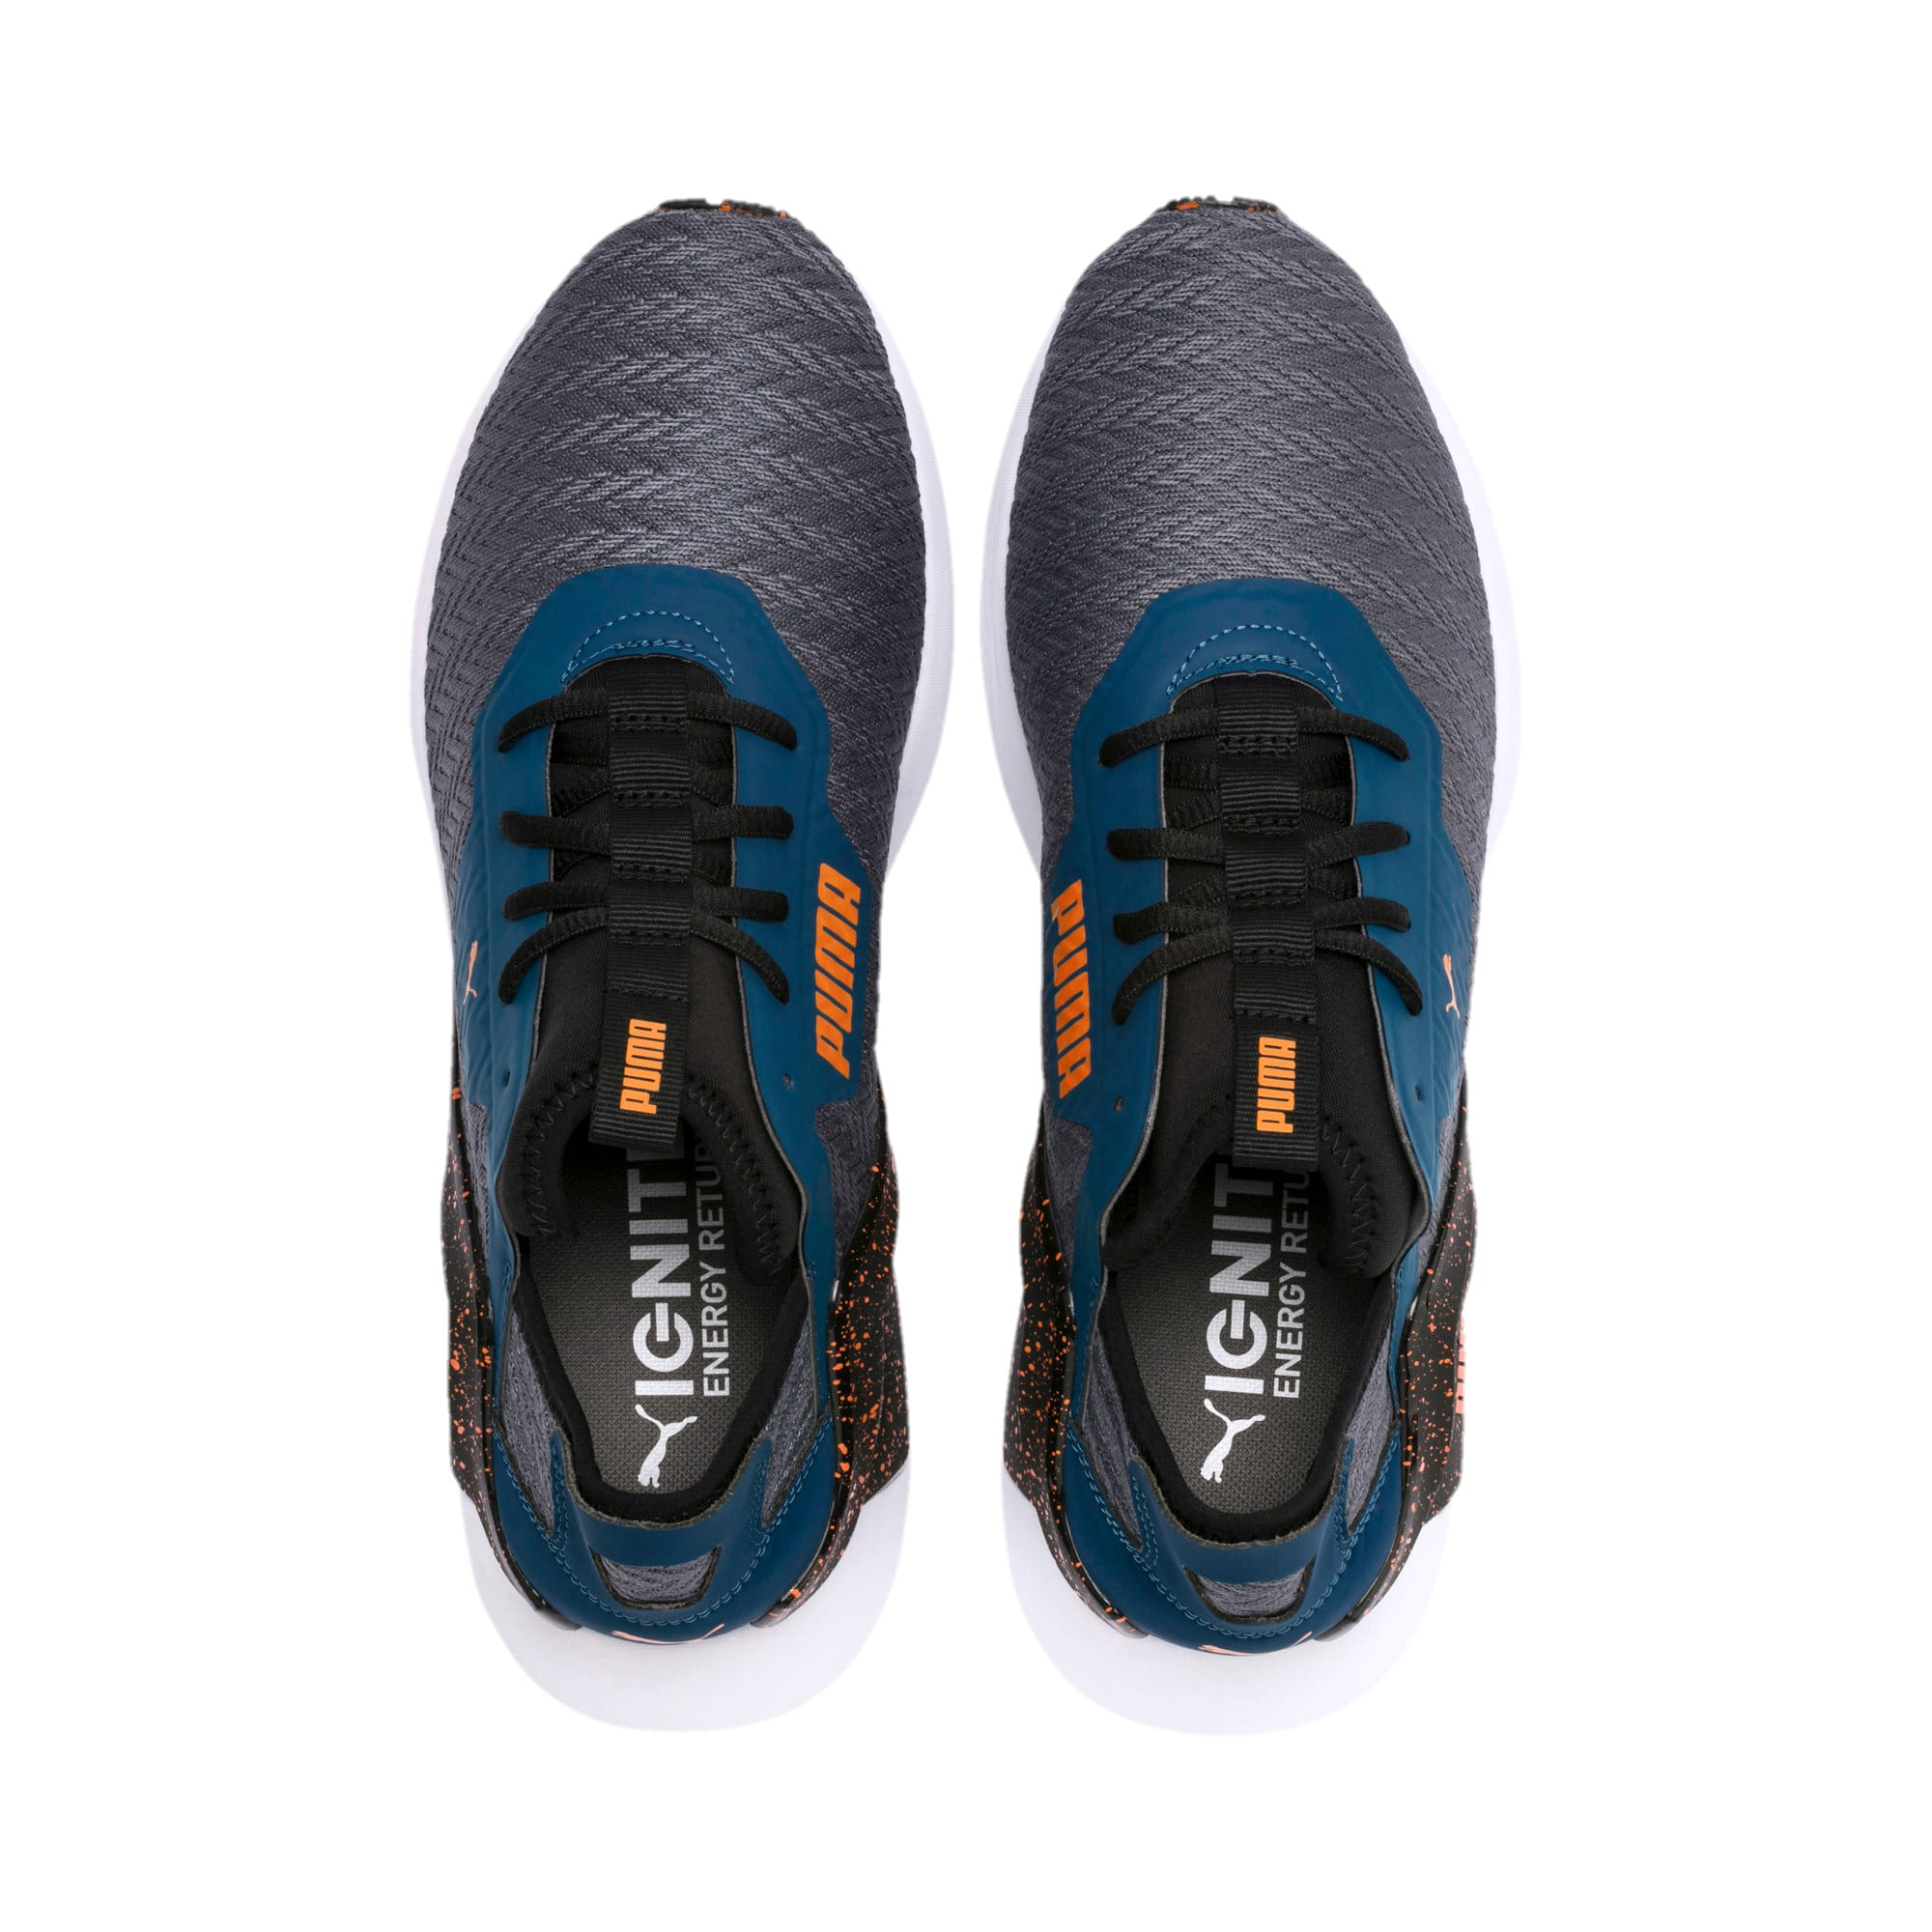 Thumbnail 7 of Rogue X Terrain Herren Sneaker, CASTLEROCK-Gibr Sea-J Orange, medium